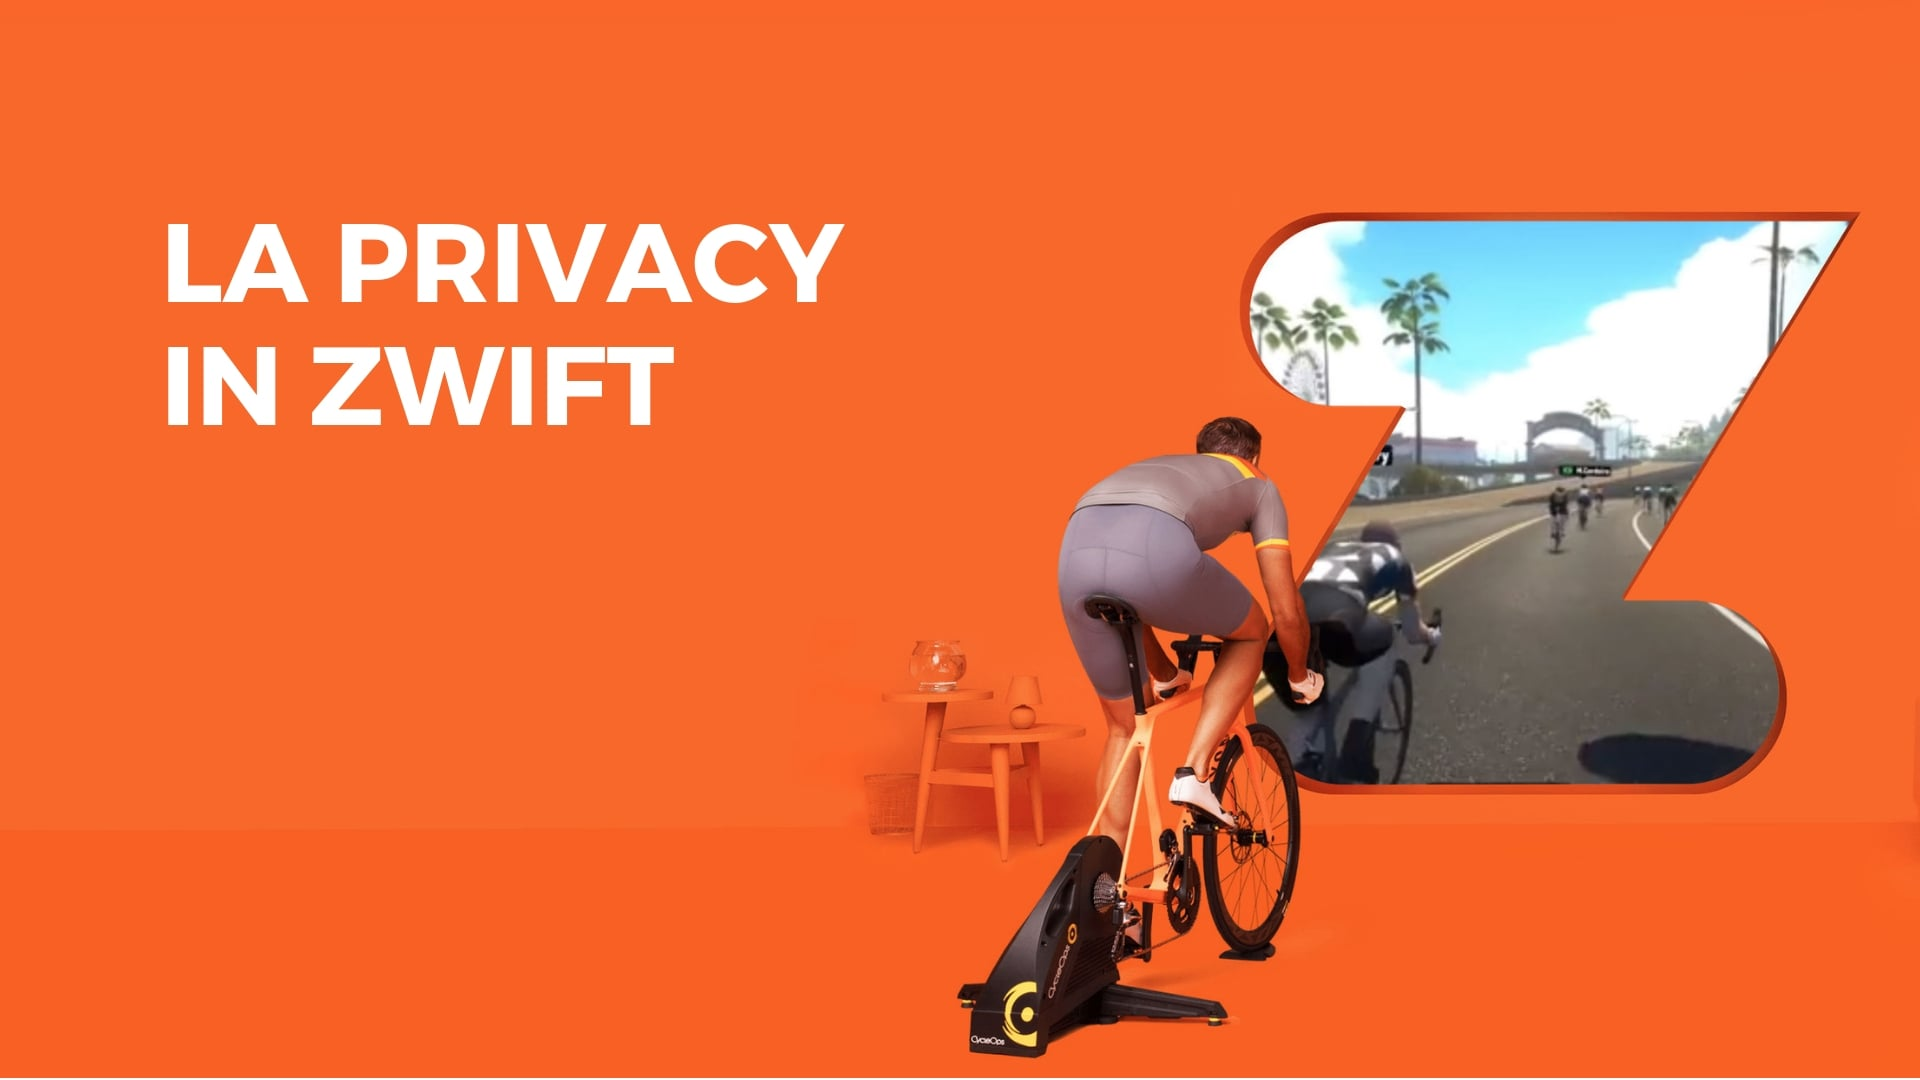 La privacy in Zwift